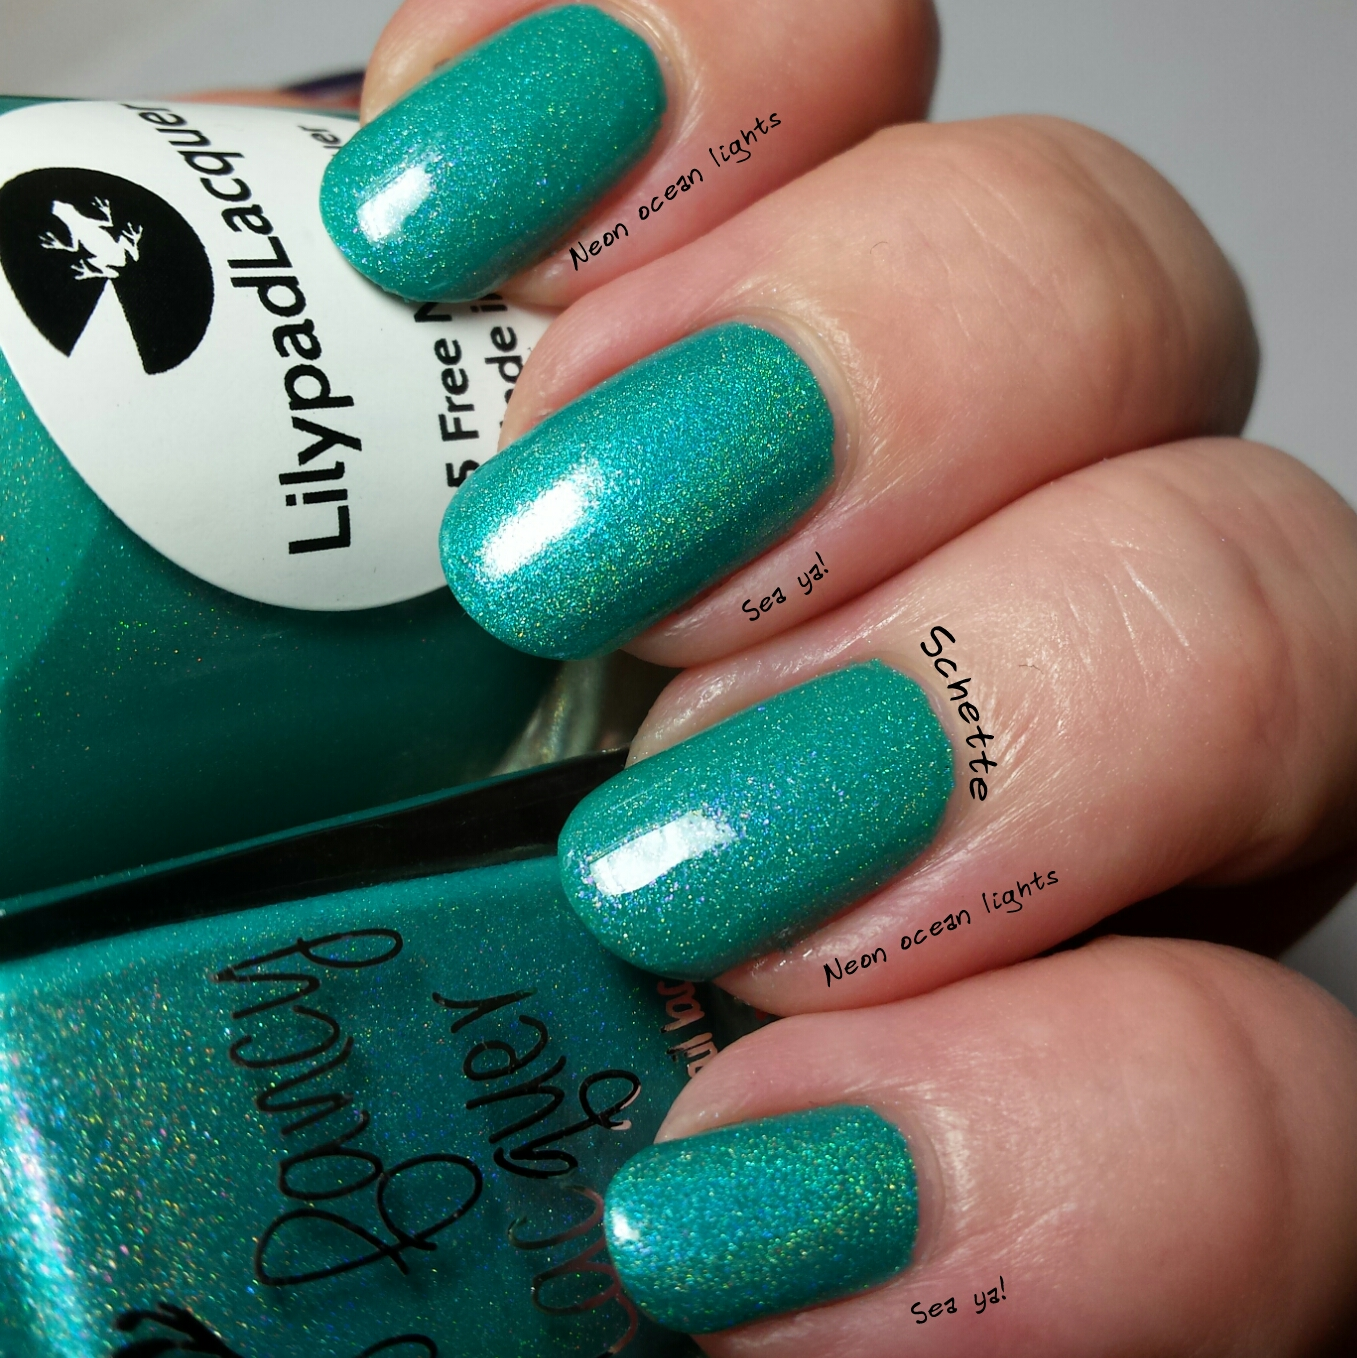 Comparison Too Fancy Lacquer Sea ya / Lilypad Lacquer Neon Ocean Lights